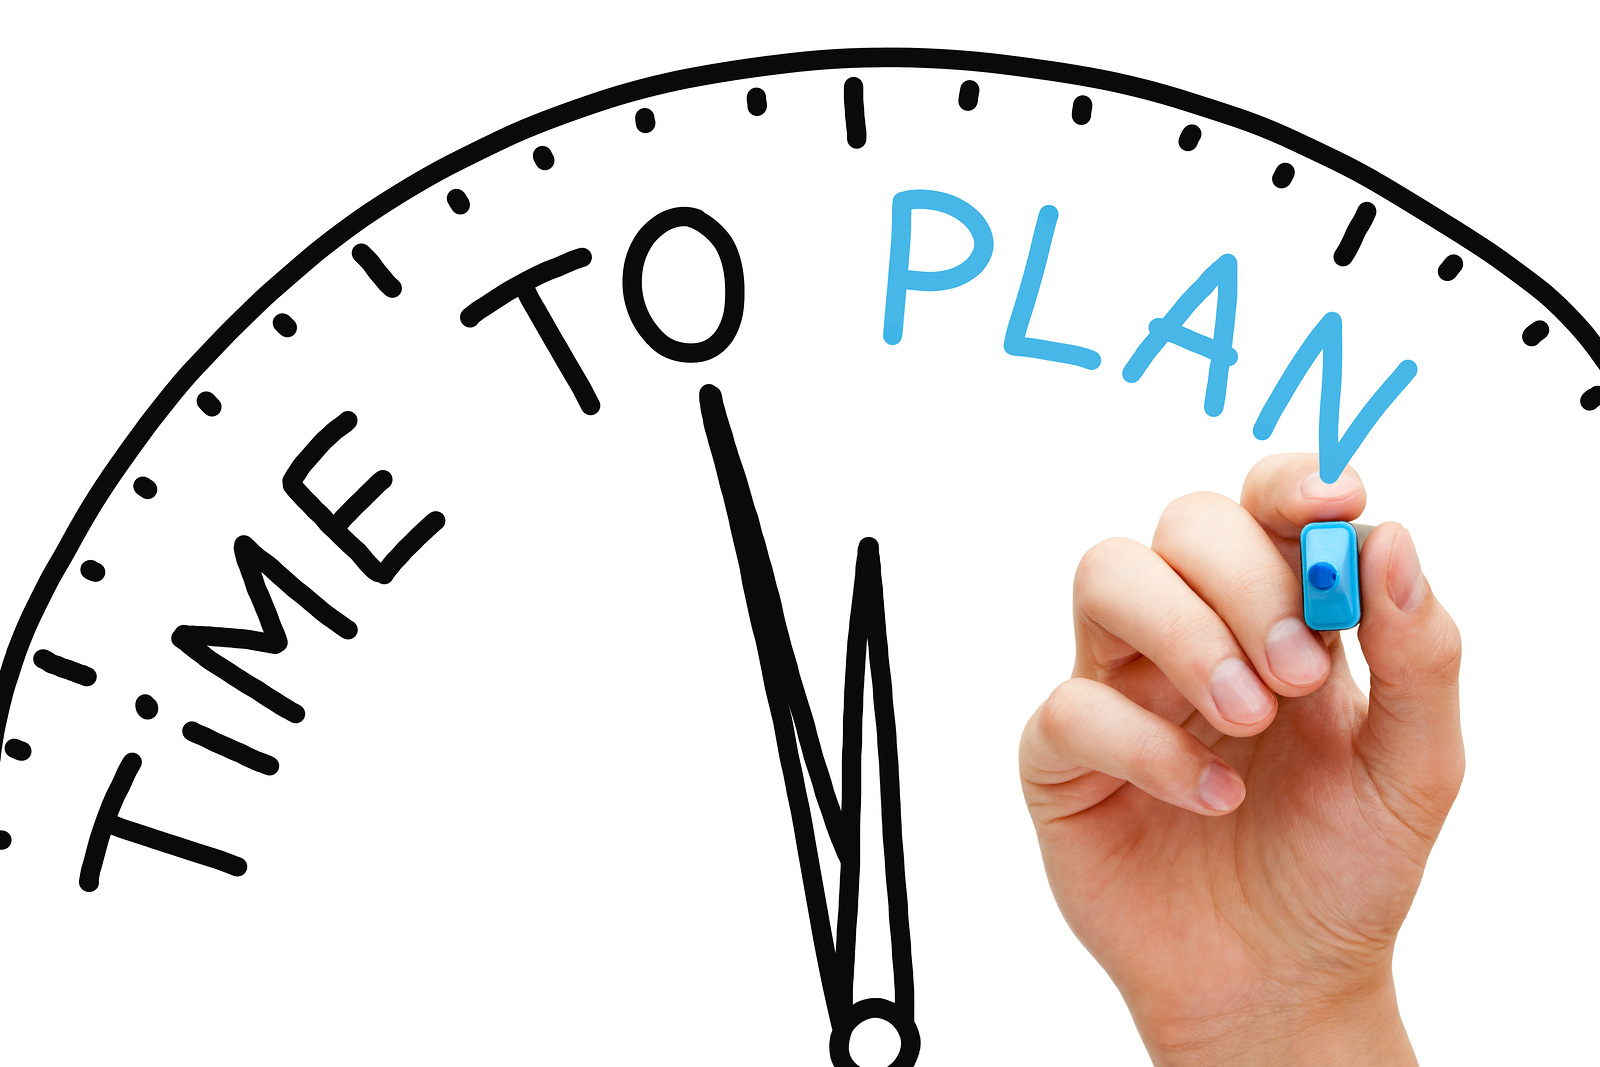 time-to-plan-derk-b-heiner-funeral-planning-advisors-time-to-plan-funeral-planning-idaho-funeral-planning